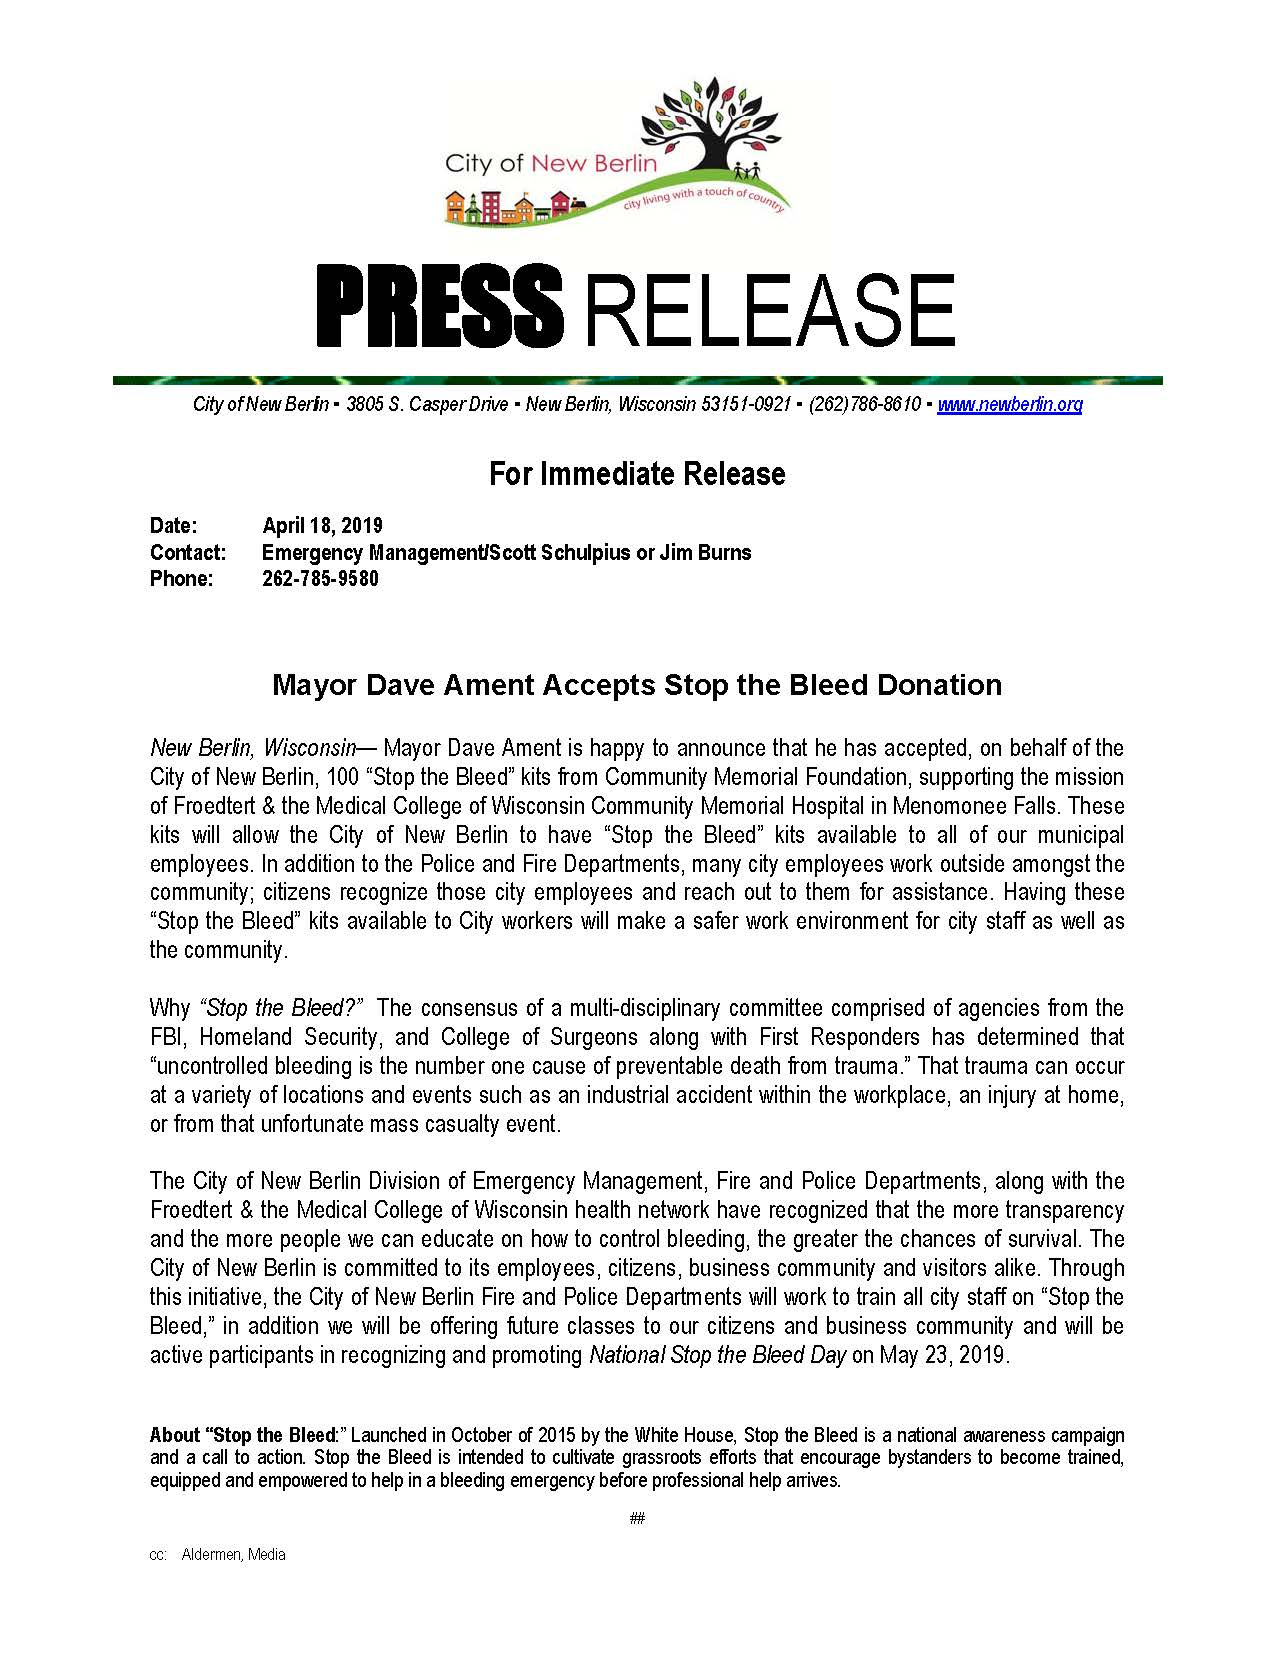 Press-Release - Stop the Bleed Donations